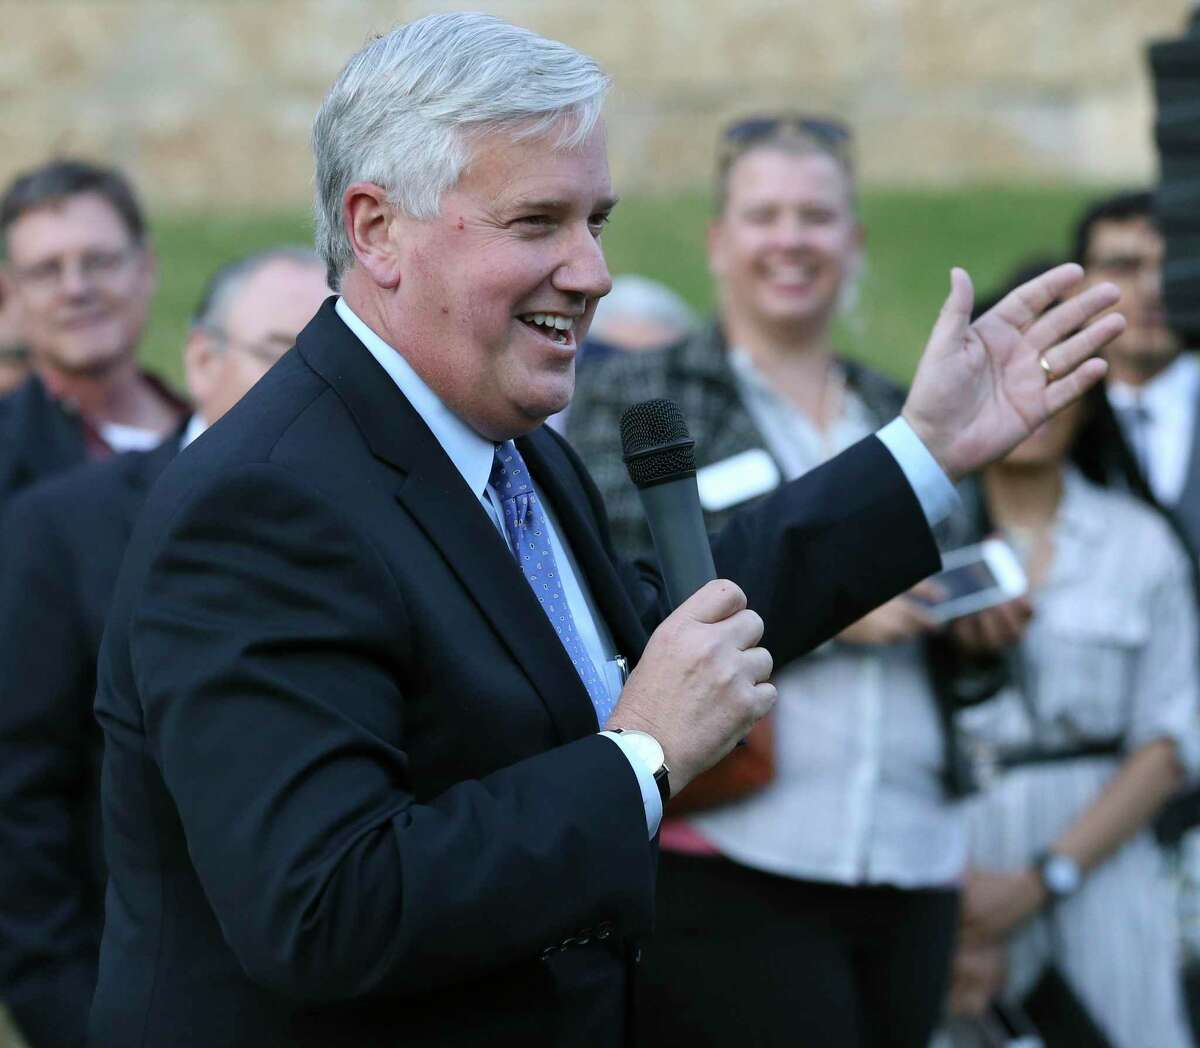 Mike Collier, who came close in the 2018 lieutenant governor's race, is gearing up to take on Lt. Gov. Dan Patrick again in 2022, but this time emphasizing issues such as Medicaid expansion and maintenance of the state's power grid.